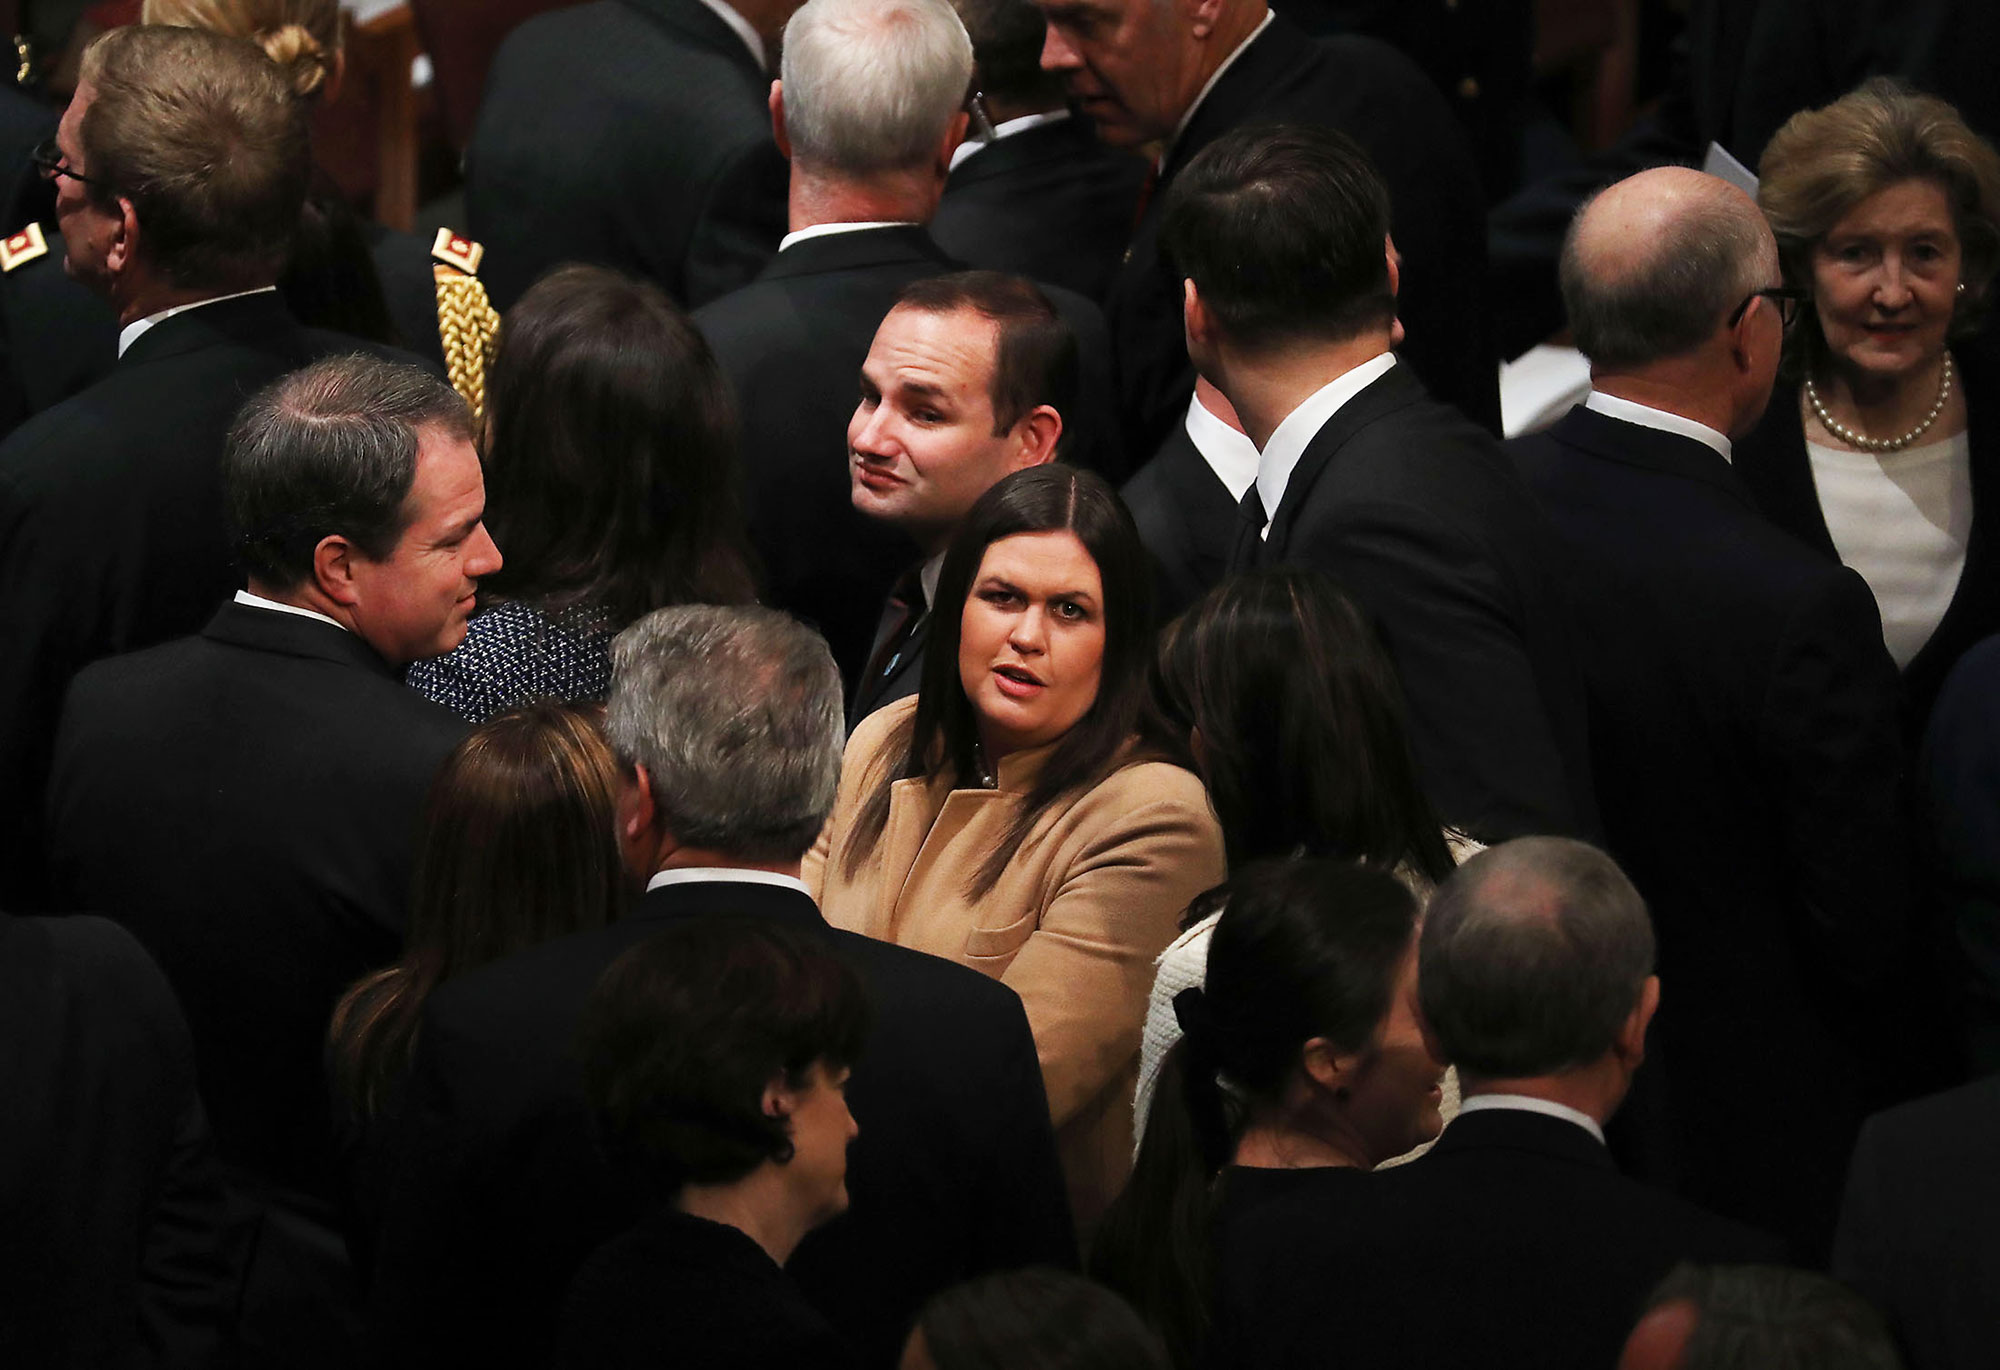 george bush funeral - The White House press secretary attended the state funeral service on Wednesday.